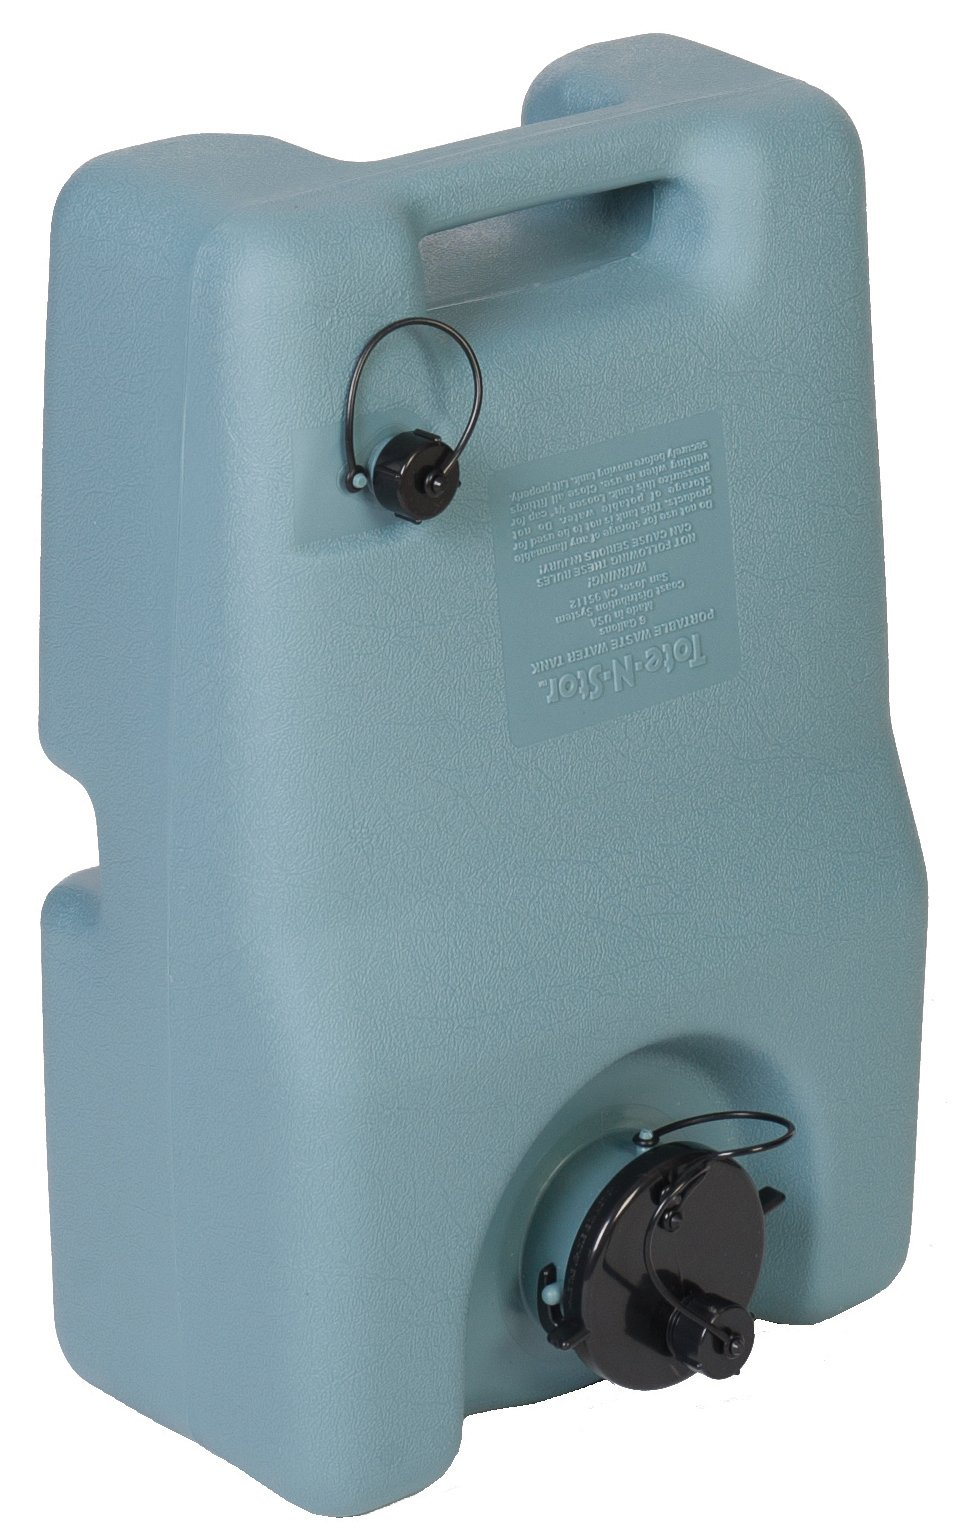 Tote-N-Stor 25951 Portable Waste Transport - 6 Gallon Capacity by Tote-N-Stor